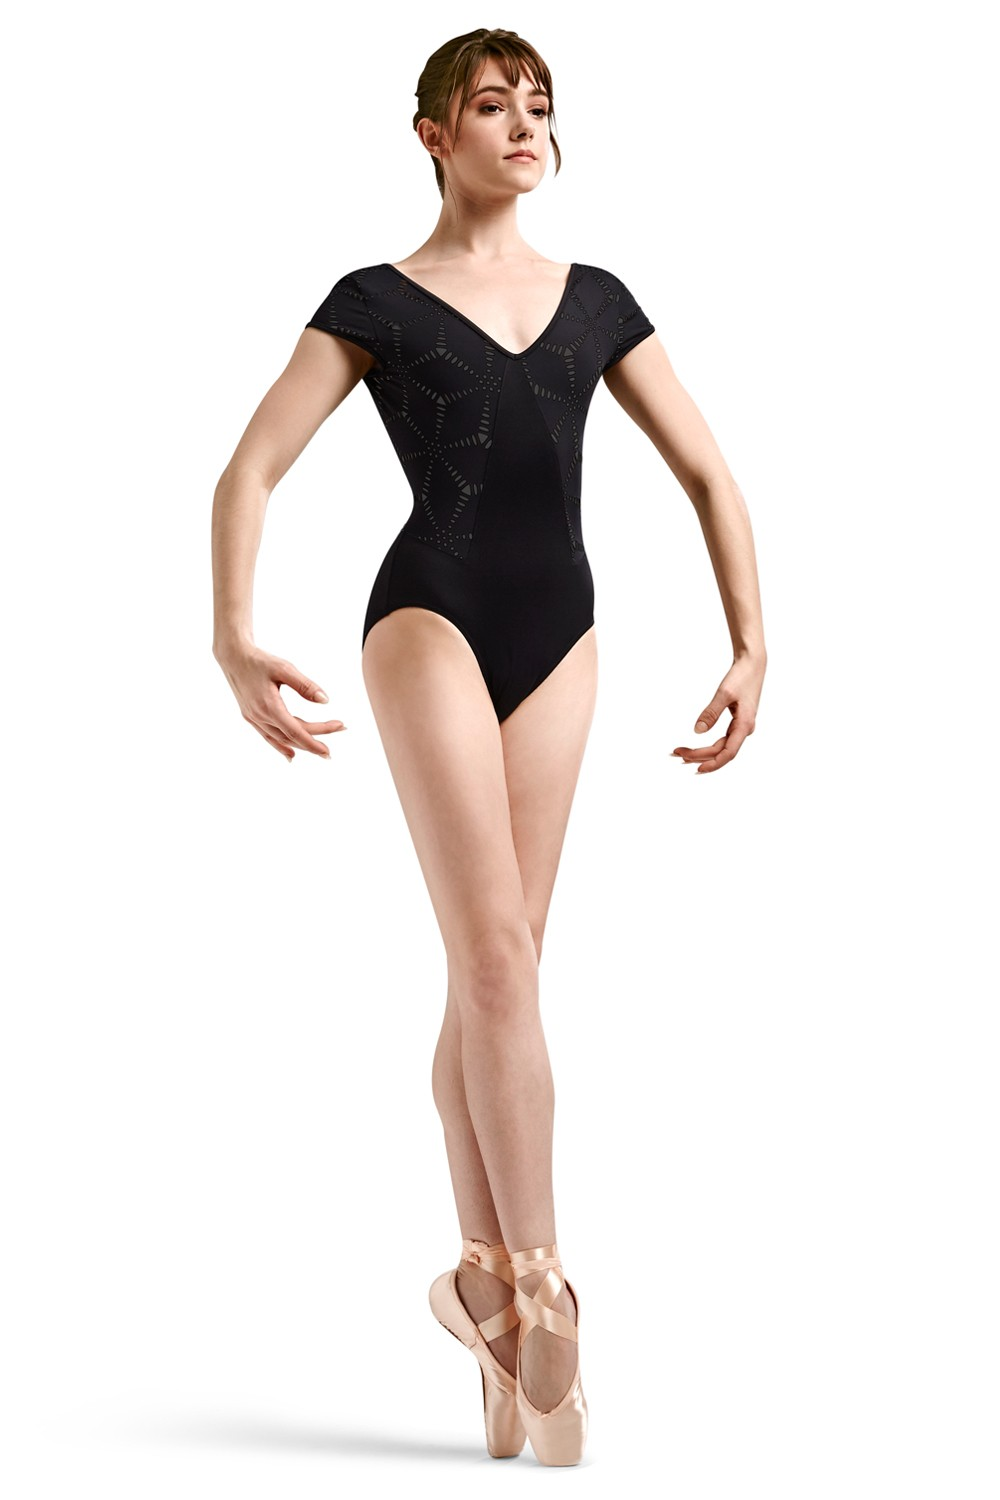 Jfm Origami Laser Cutout Women's Dance Leotards